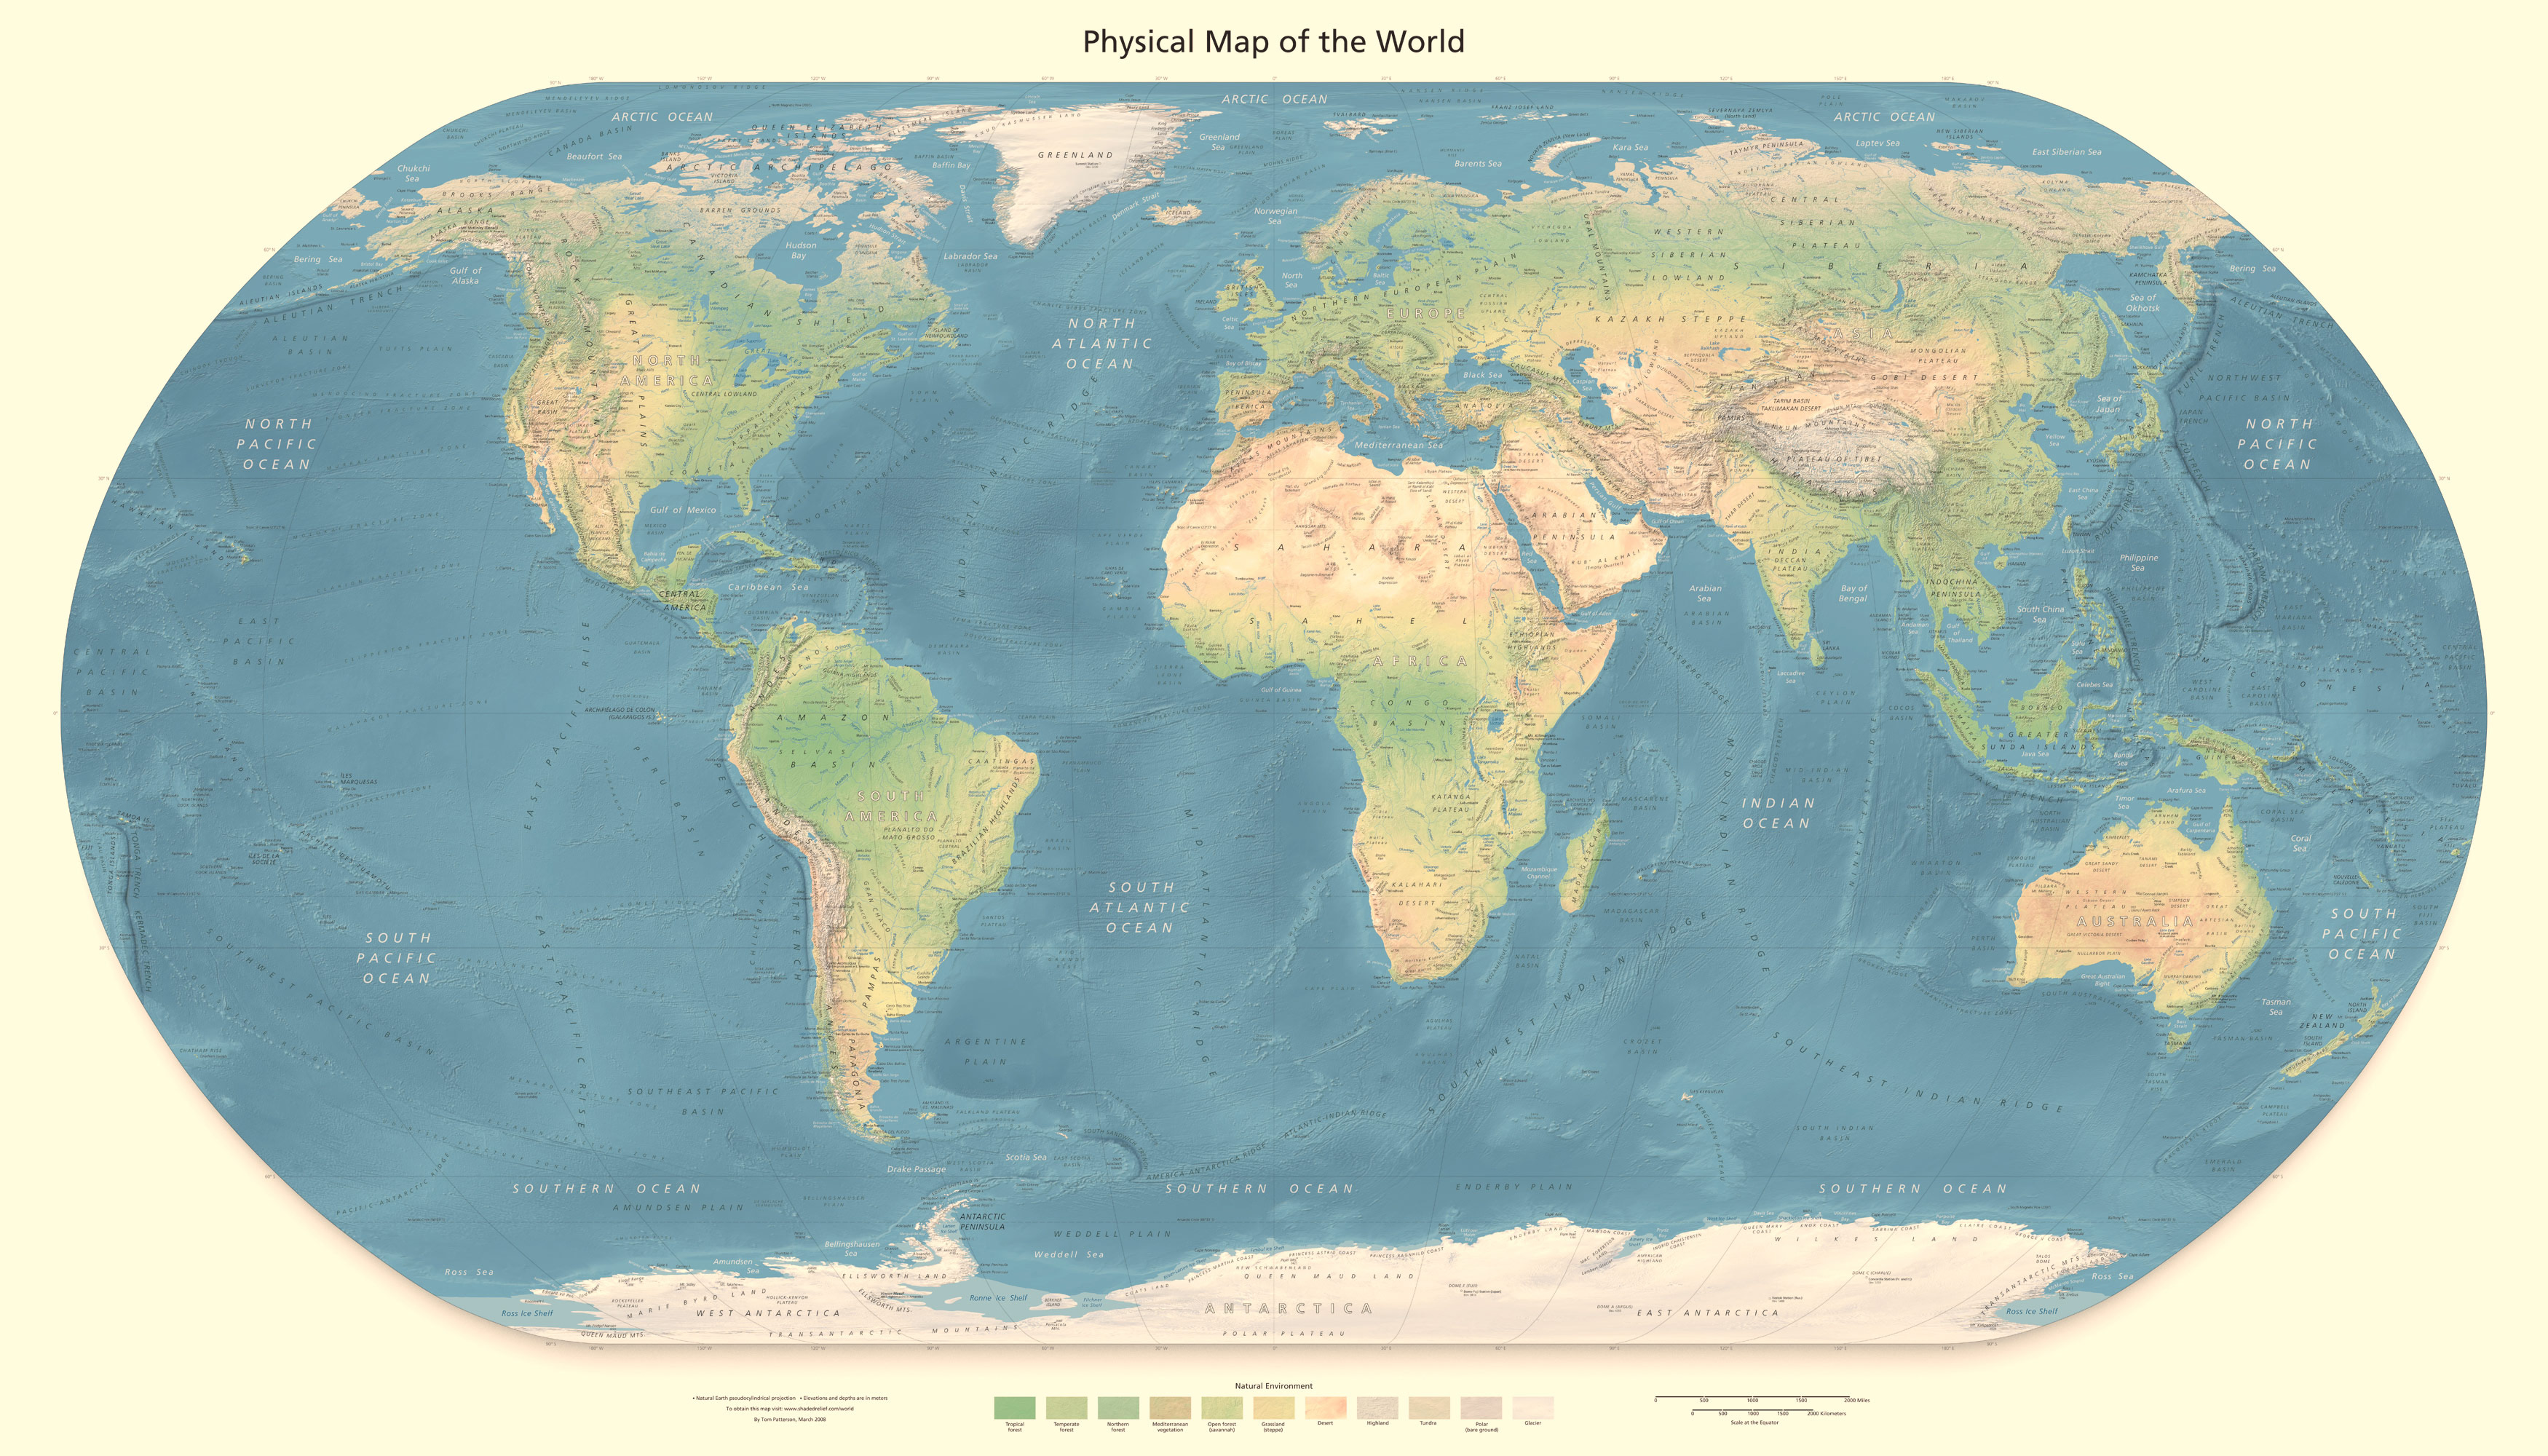 Detailed physical map of the world detailed physical world map detailed physical map of the world detailed physical world map gumiabroncs Choice Image